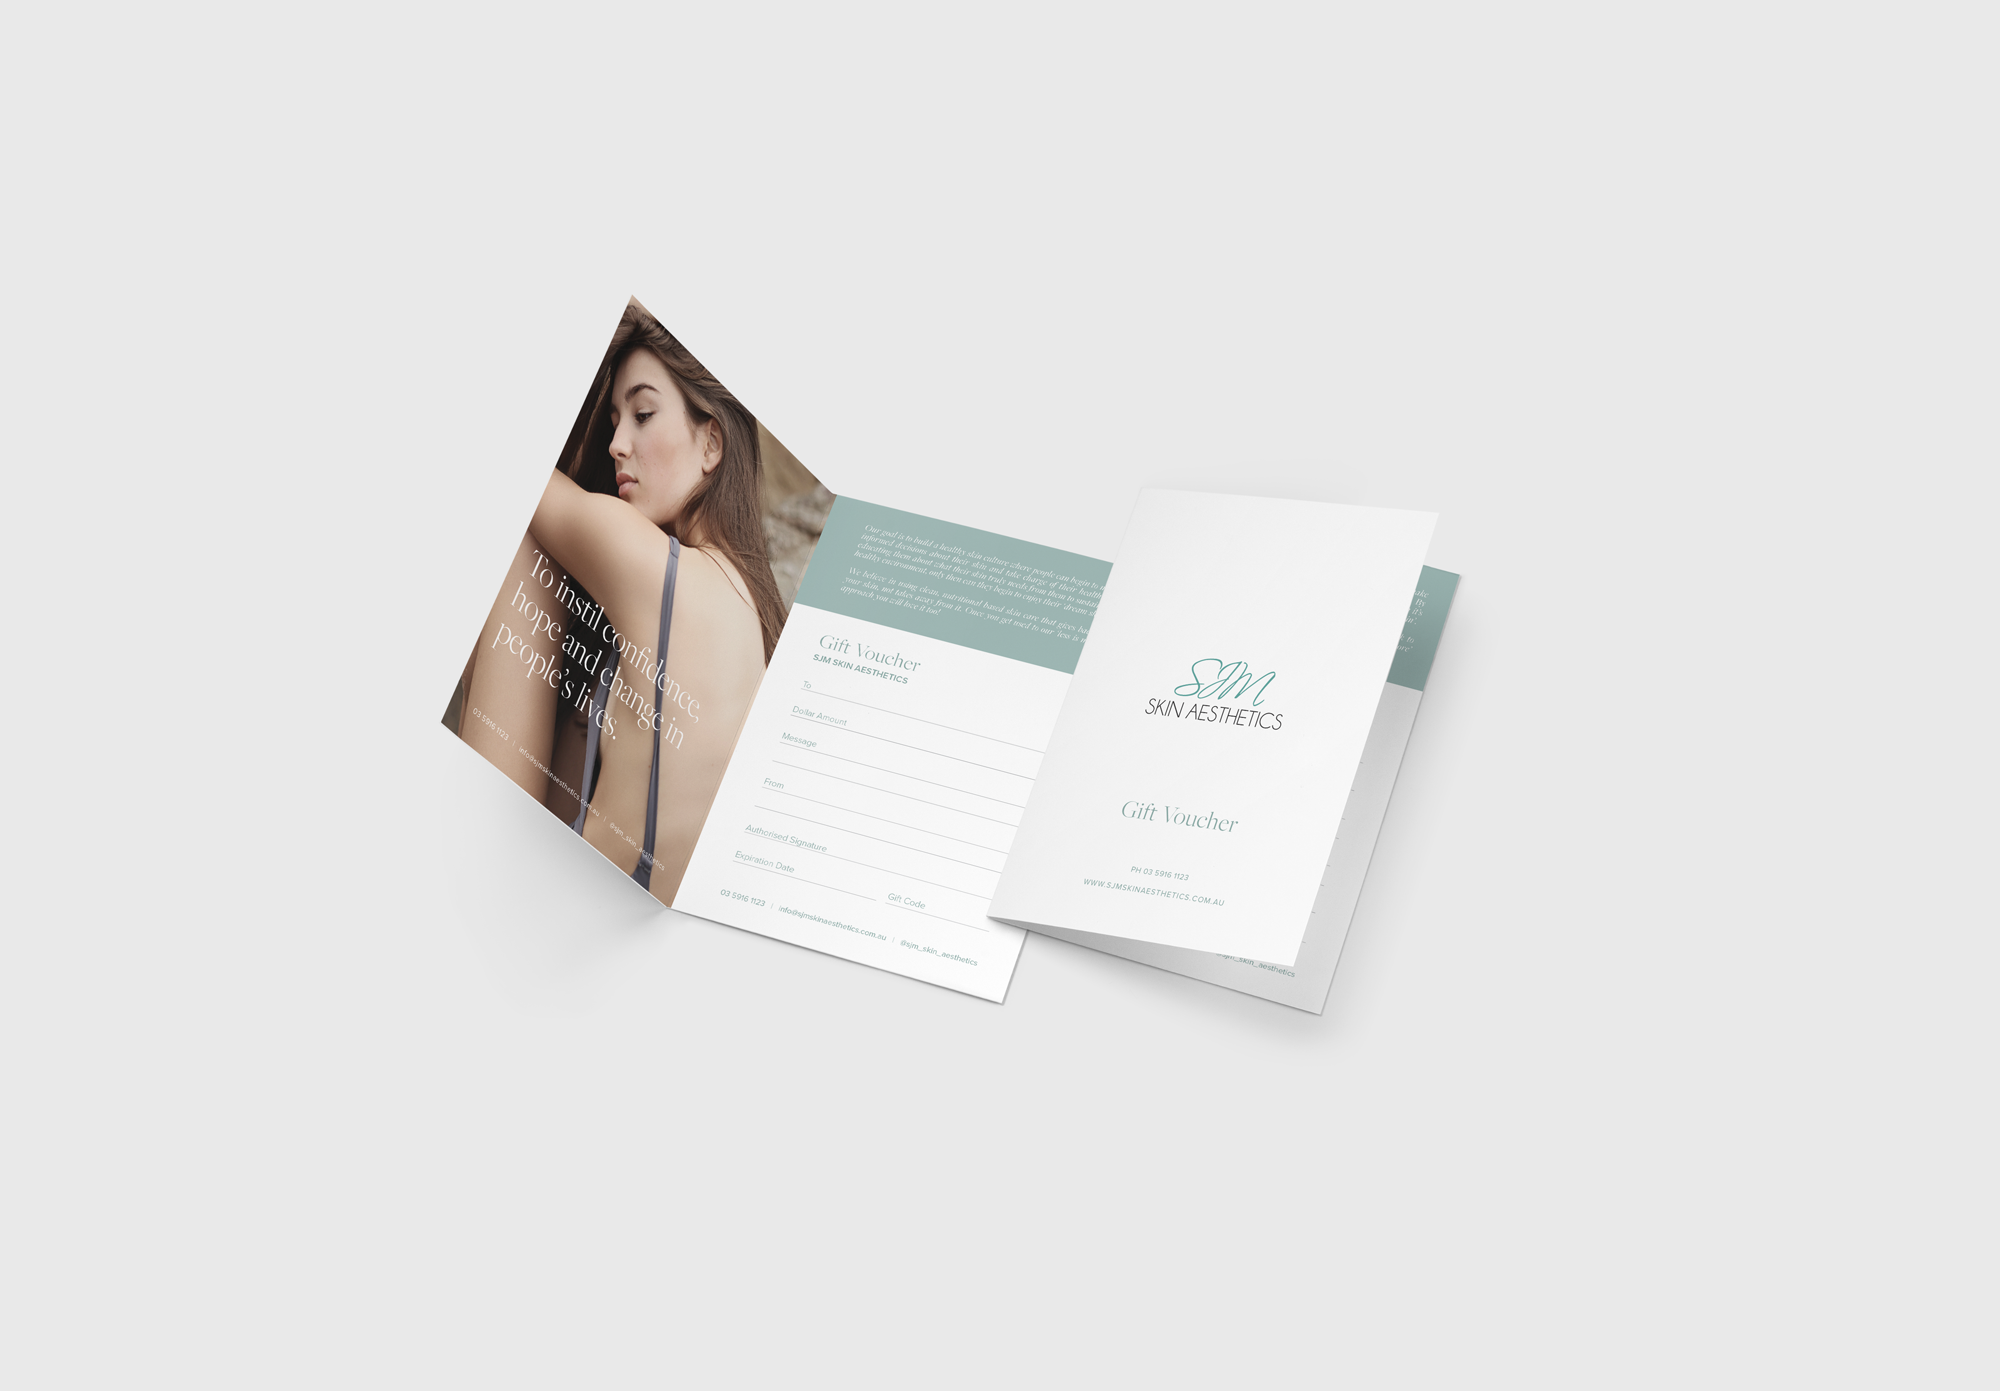 gift card design and packaging